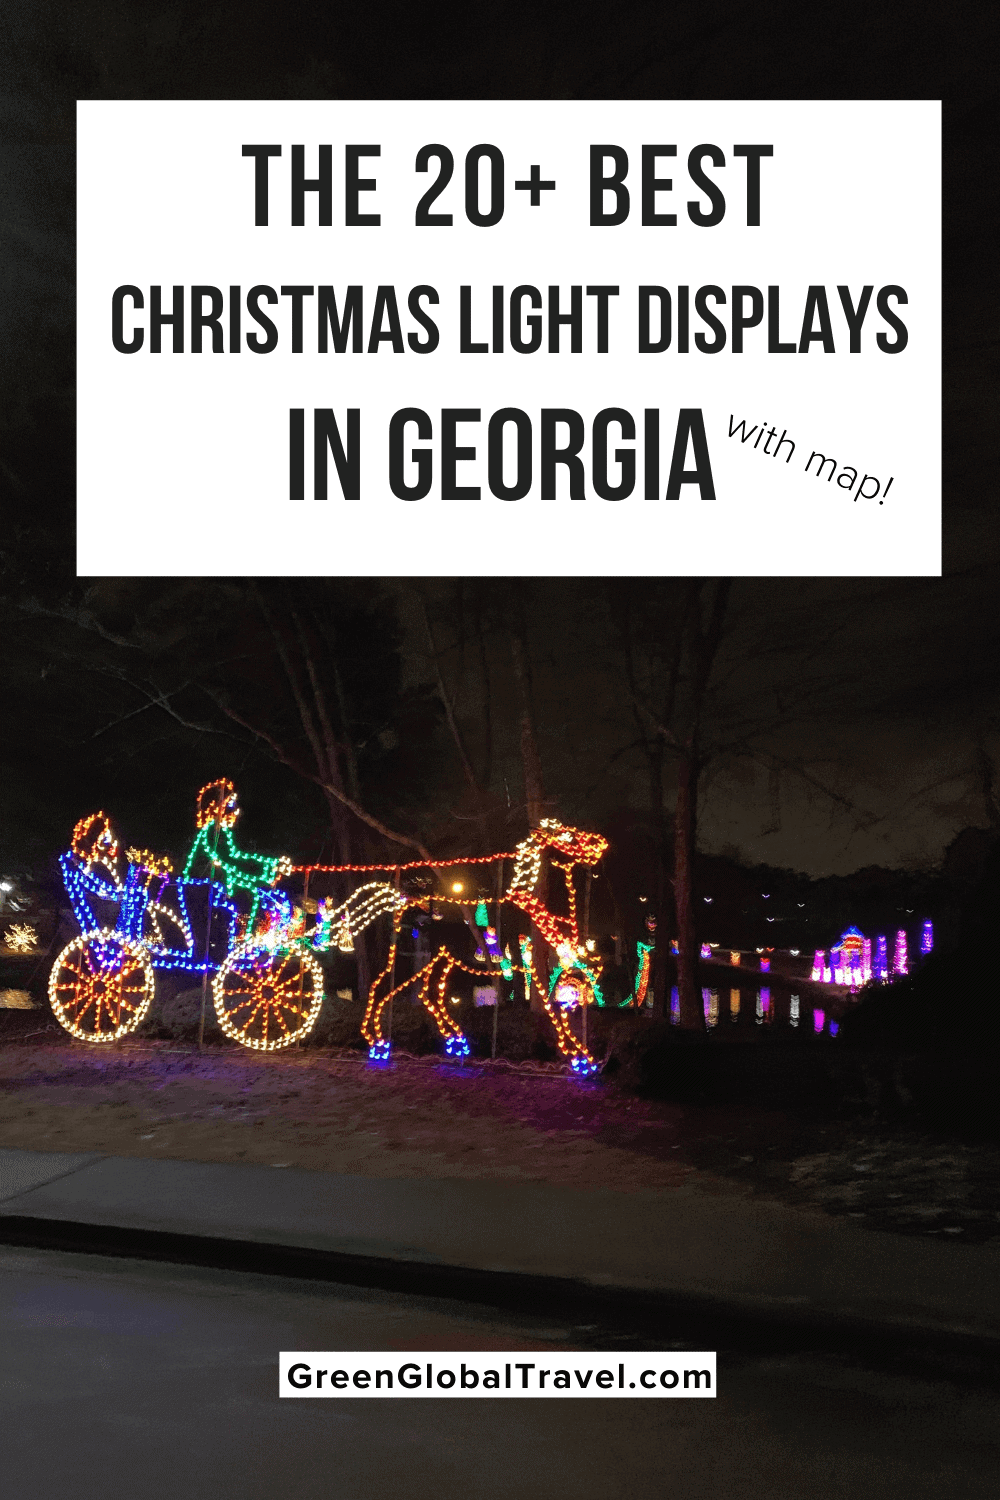 20 Best Christmas Light Displays in Georgia for 2020 w/ Map! including the Botanical Gardens, Lake Lanier, Callaway Gardens, Stone Mountain, Blue Ridge & more. | southern lights | christmas light displays | southern christmas show | best christmas lights| lights of the south | best outdoor christmas lights | christmas lights in atlanta | christmas in the south | georgia christmas | georgia christmas lights | christmas lights in georgia | holiday light show | atlanta christmas